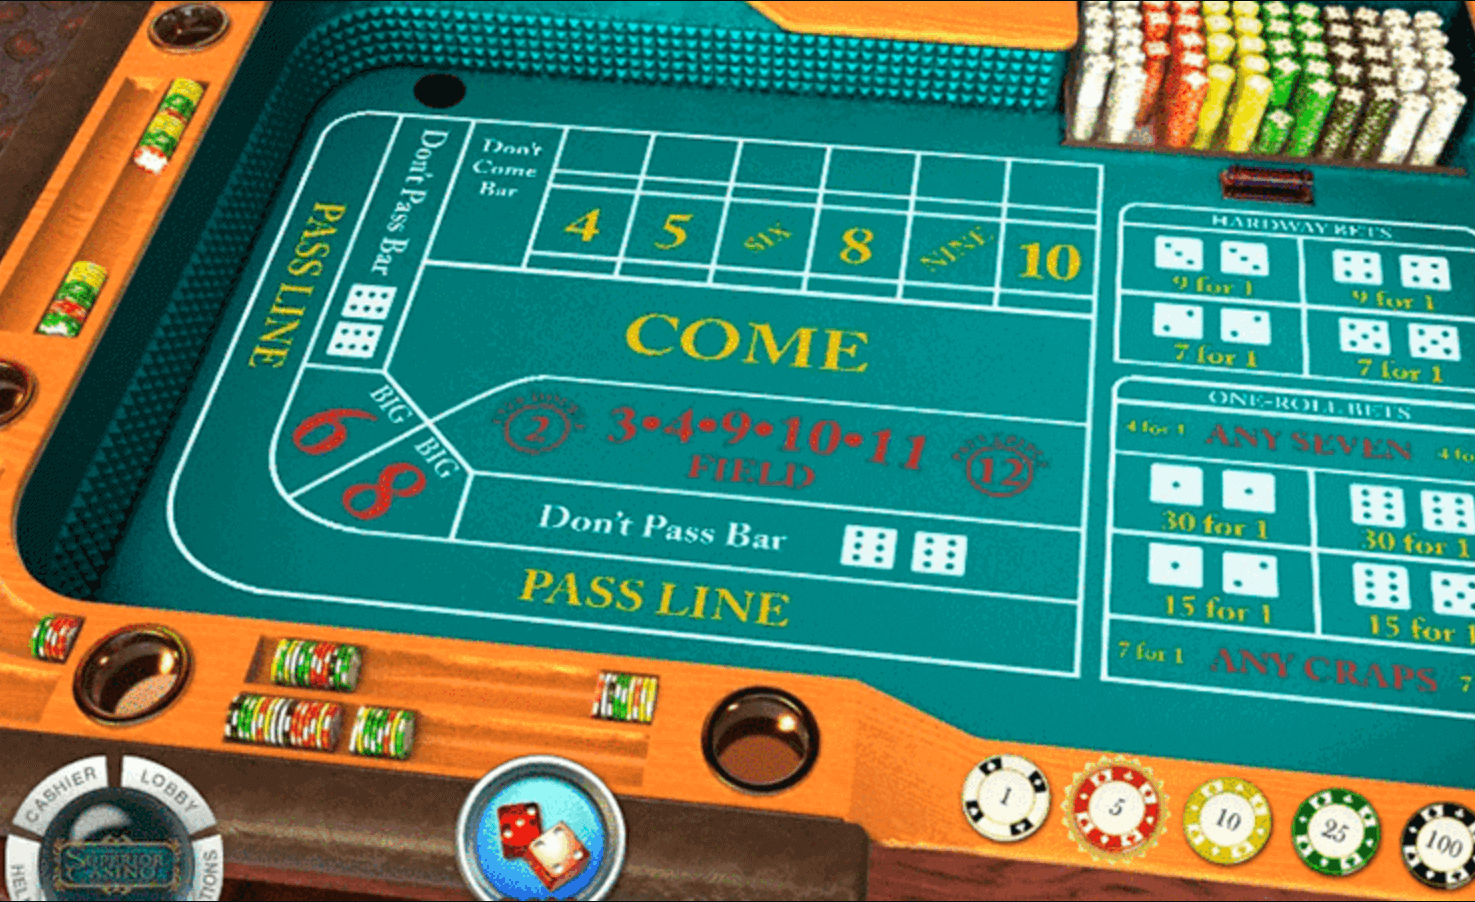 screenshot showing a craps table felt betting options